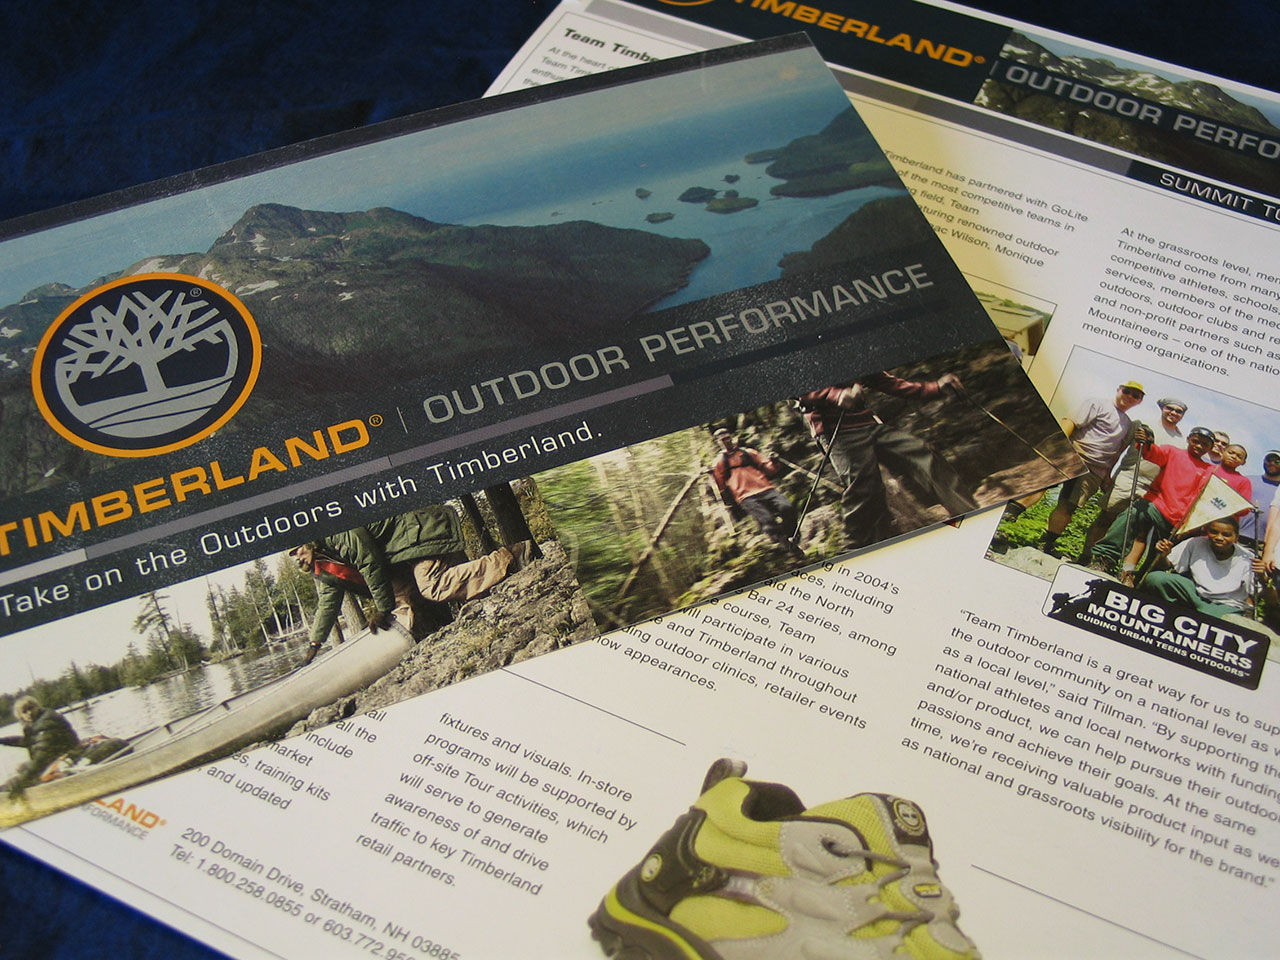 Timberland Outdoor Performance Flyers